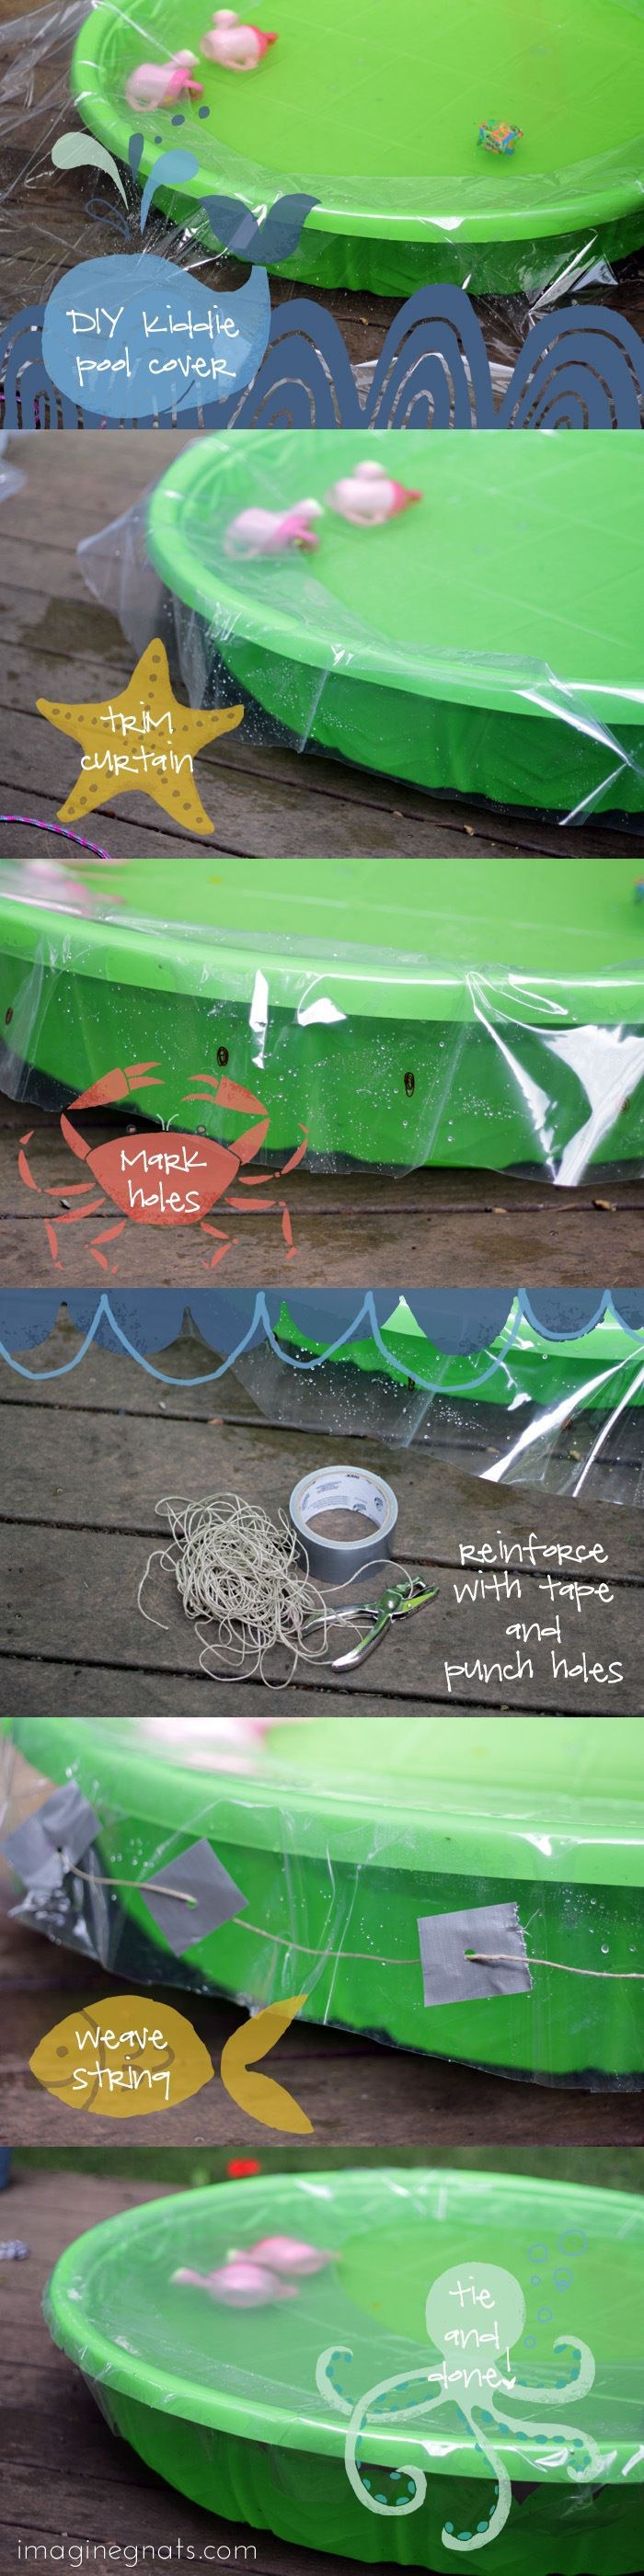 could do this for a makeshift greenhouse cover for large pots. DIY: kiddie pool cover || imagine gnats